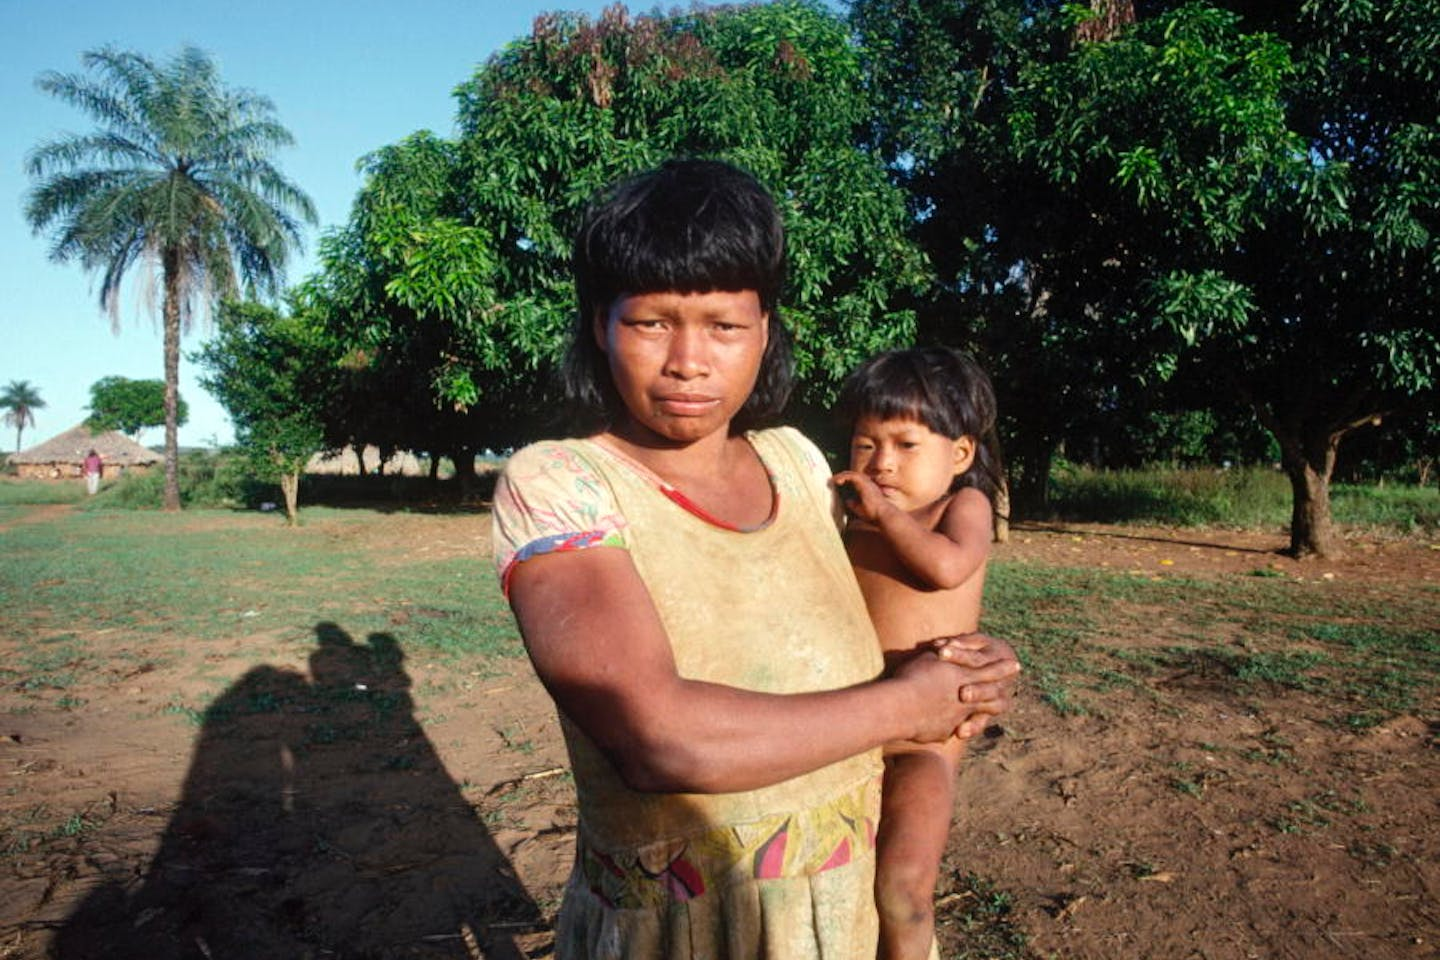 Shavante Indian mother with her baby in Brazil.